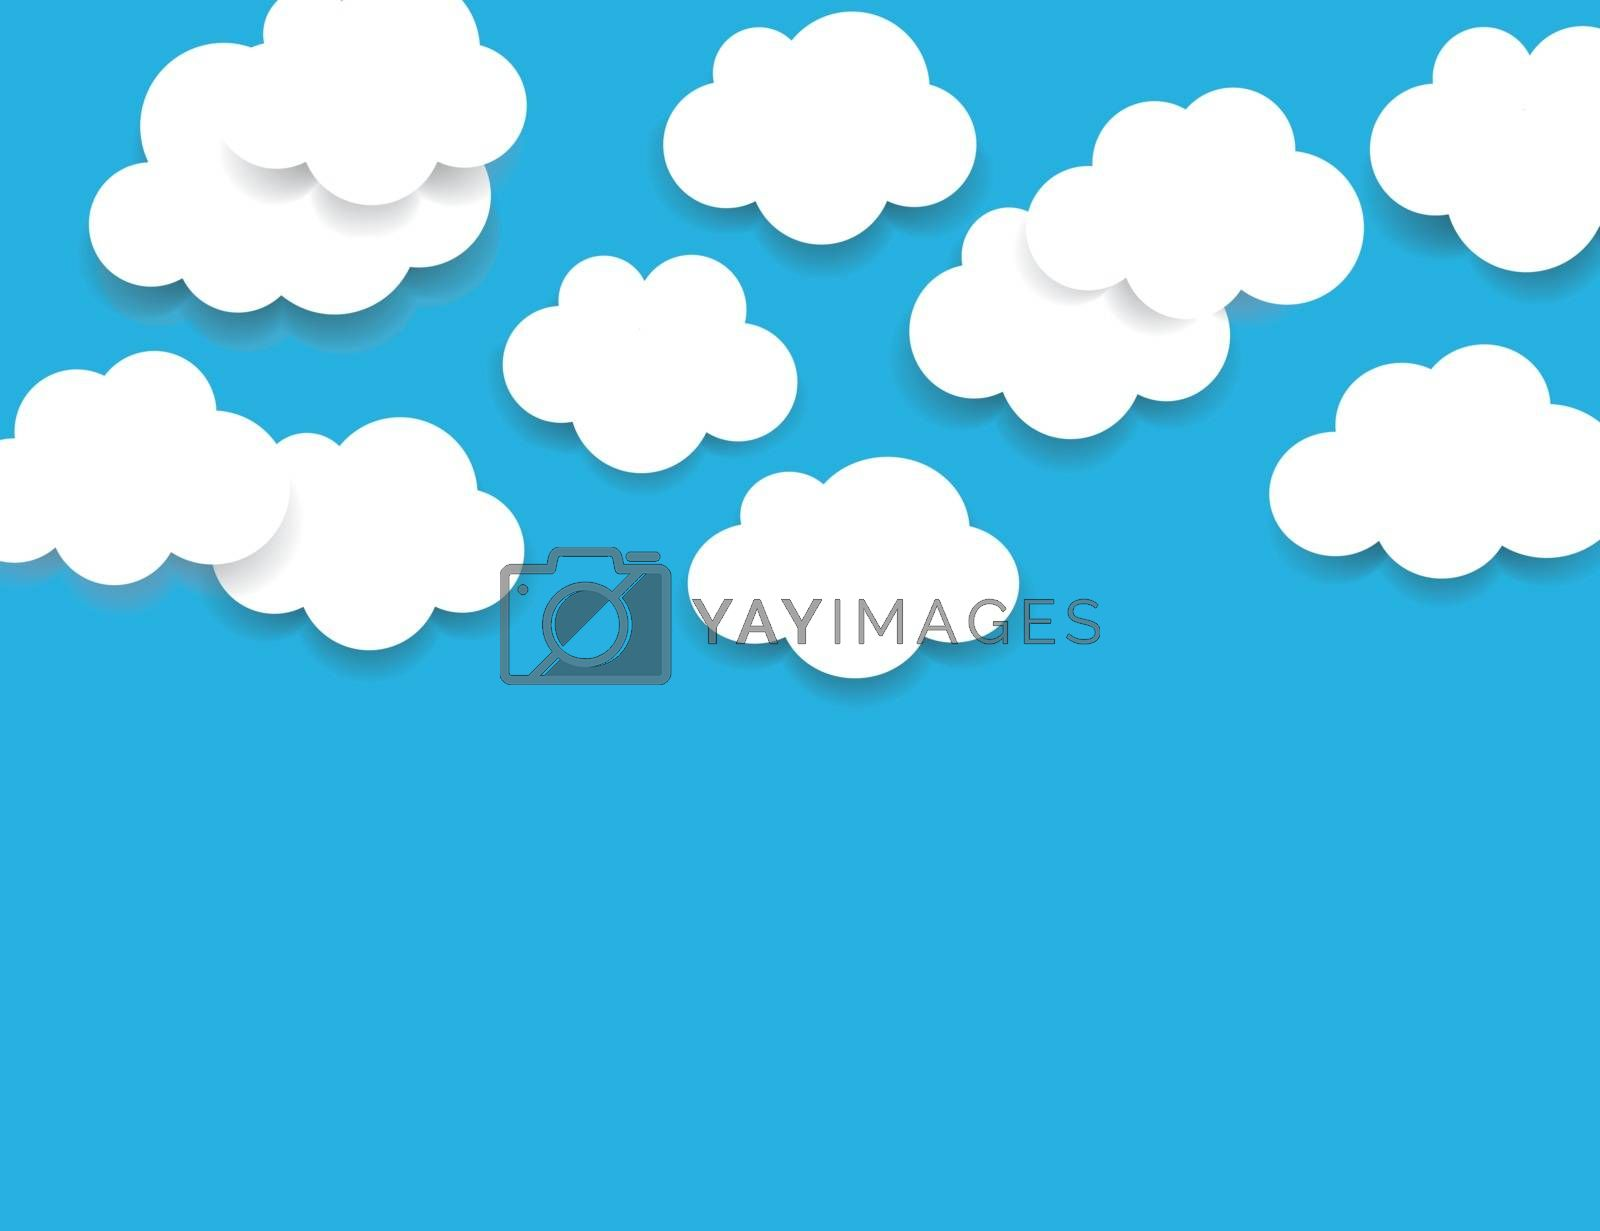 Light blue sky with fluffy white clouds background. Paper cartoon clouds with shadow. Can be used as border, icon, sign, element for web design or business presentations. Simple vector illustration